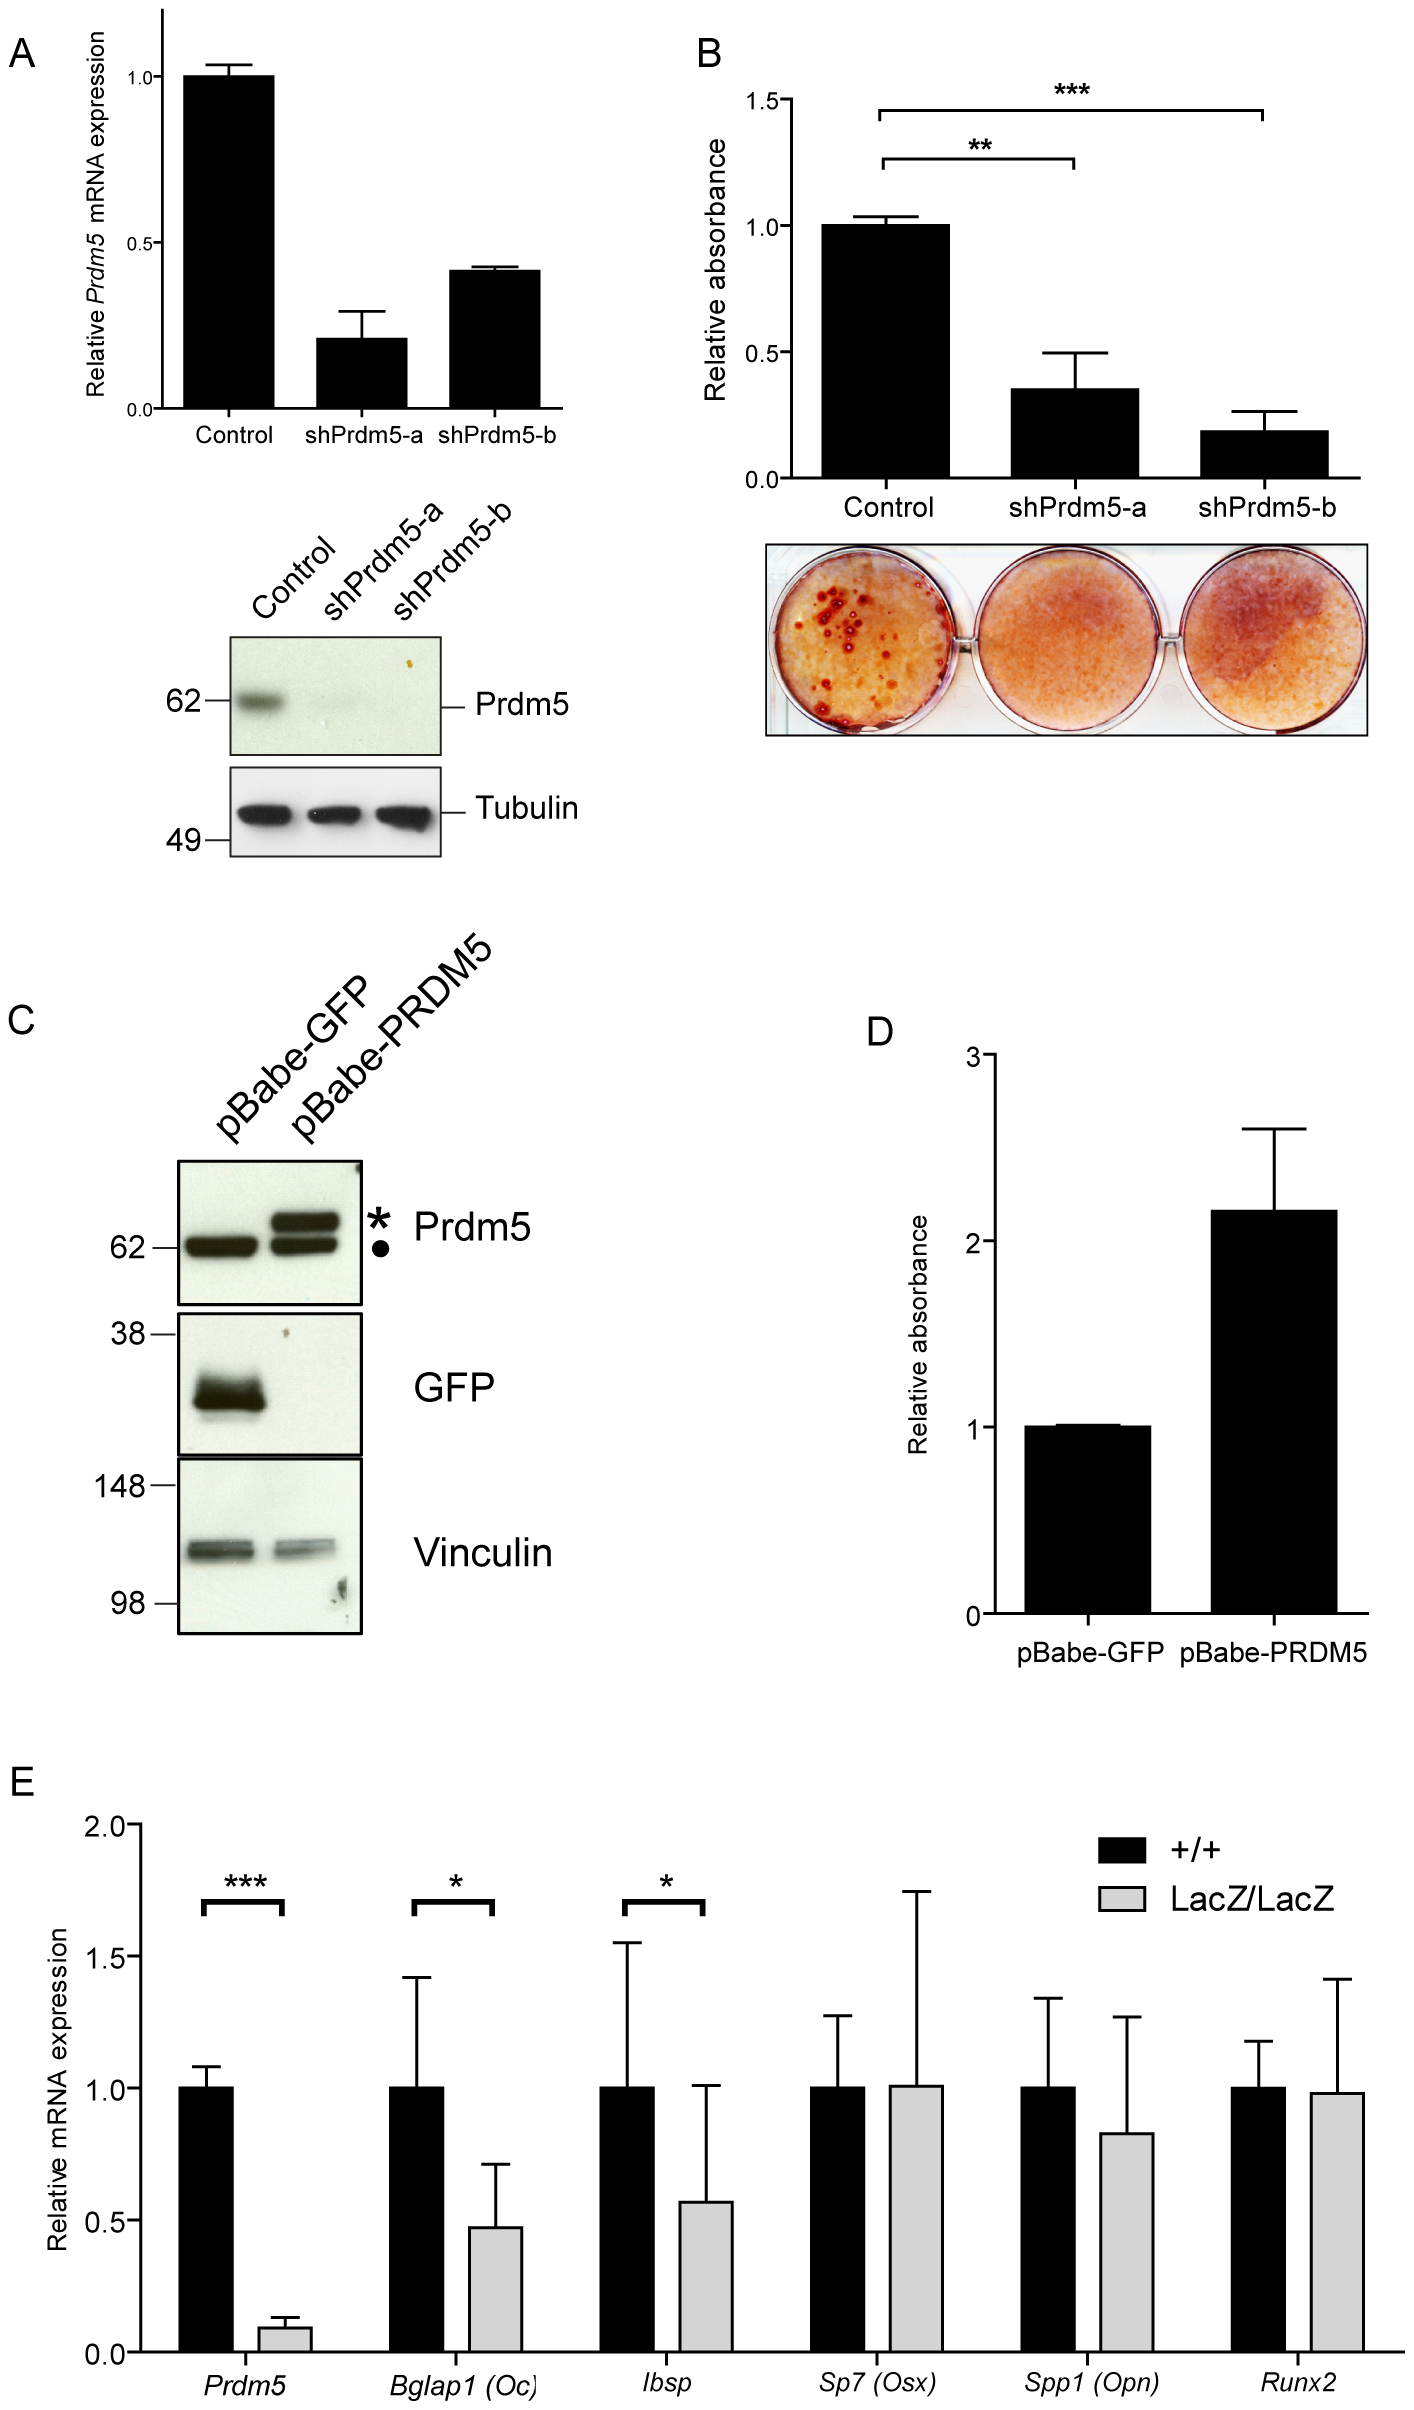 Prdm5 deregulation impairs osteogenic differentiation <i>in vitro</i>.